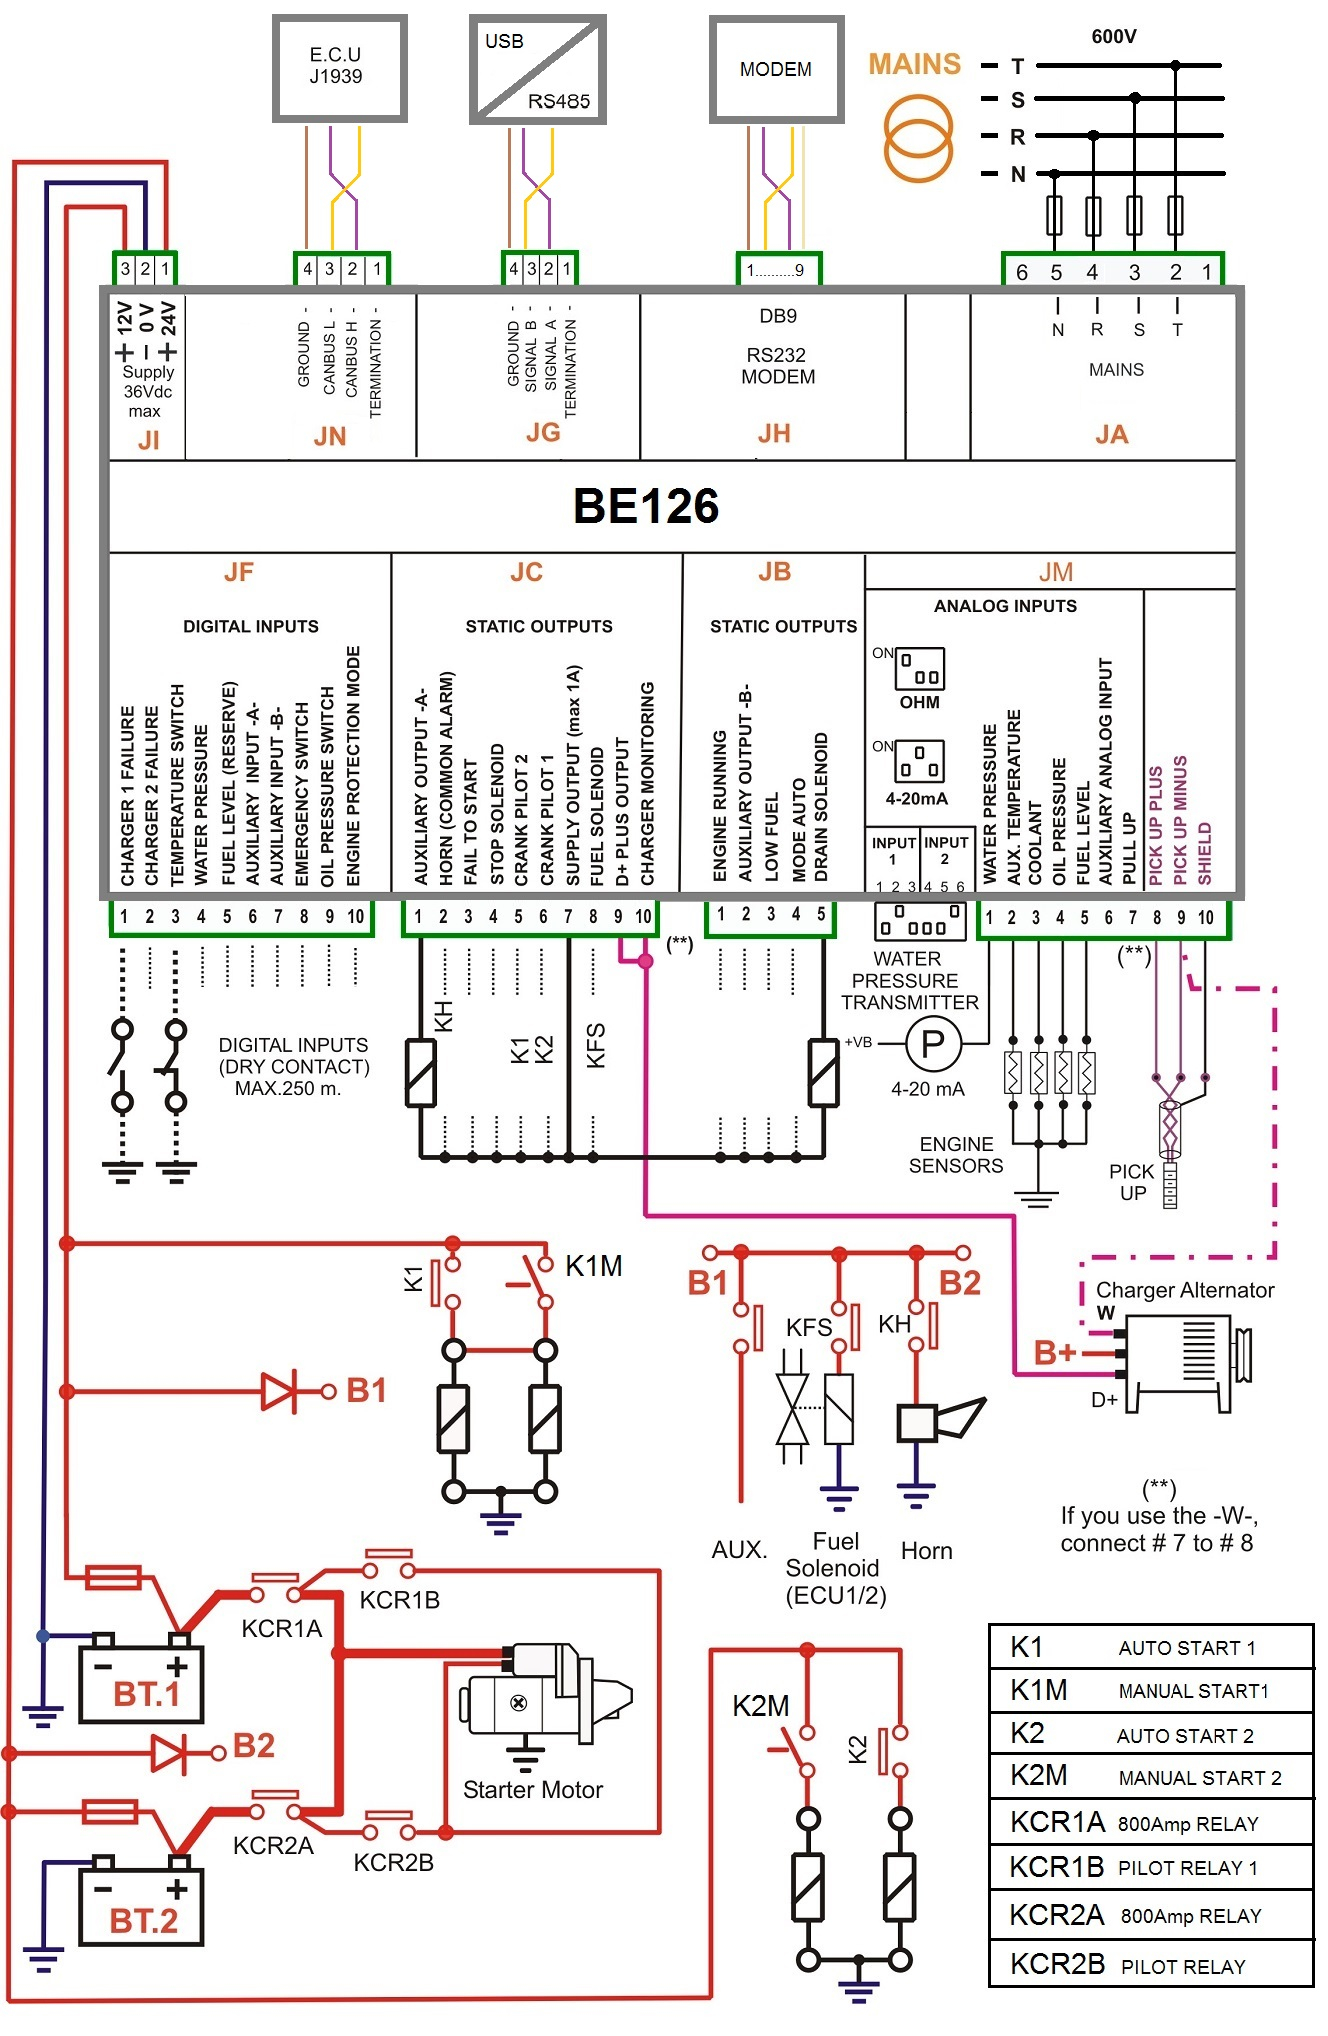 electrical control panel wiring diagram pdf Download-Electrical Control Panel Wiring Diagram Pdf New Hardinge Hlv Parts List Page Electric Control Panel Wiring 19-p